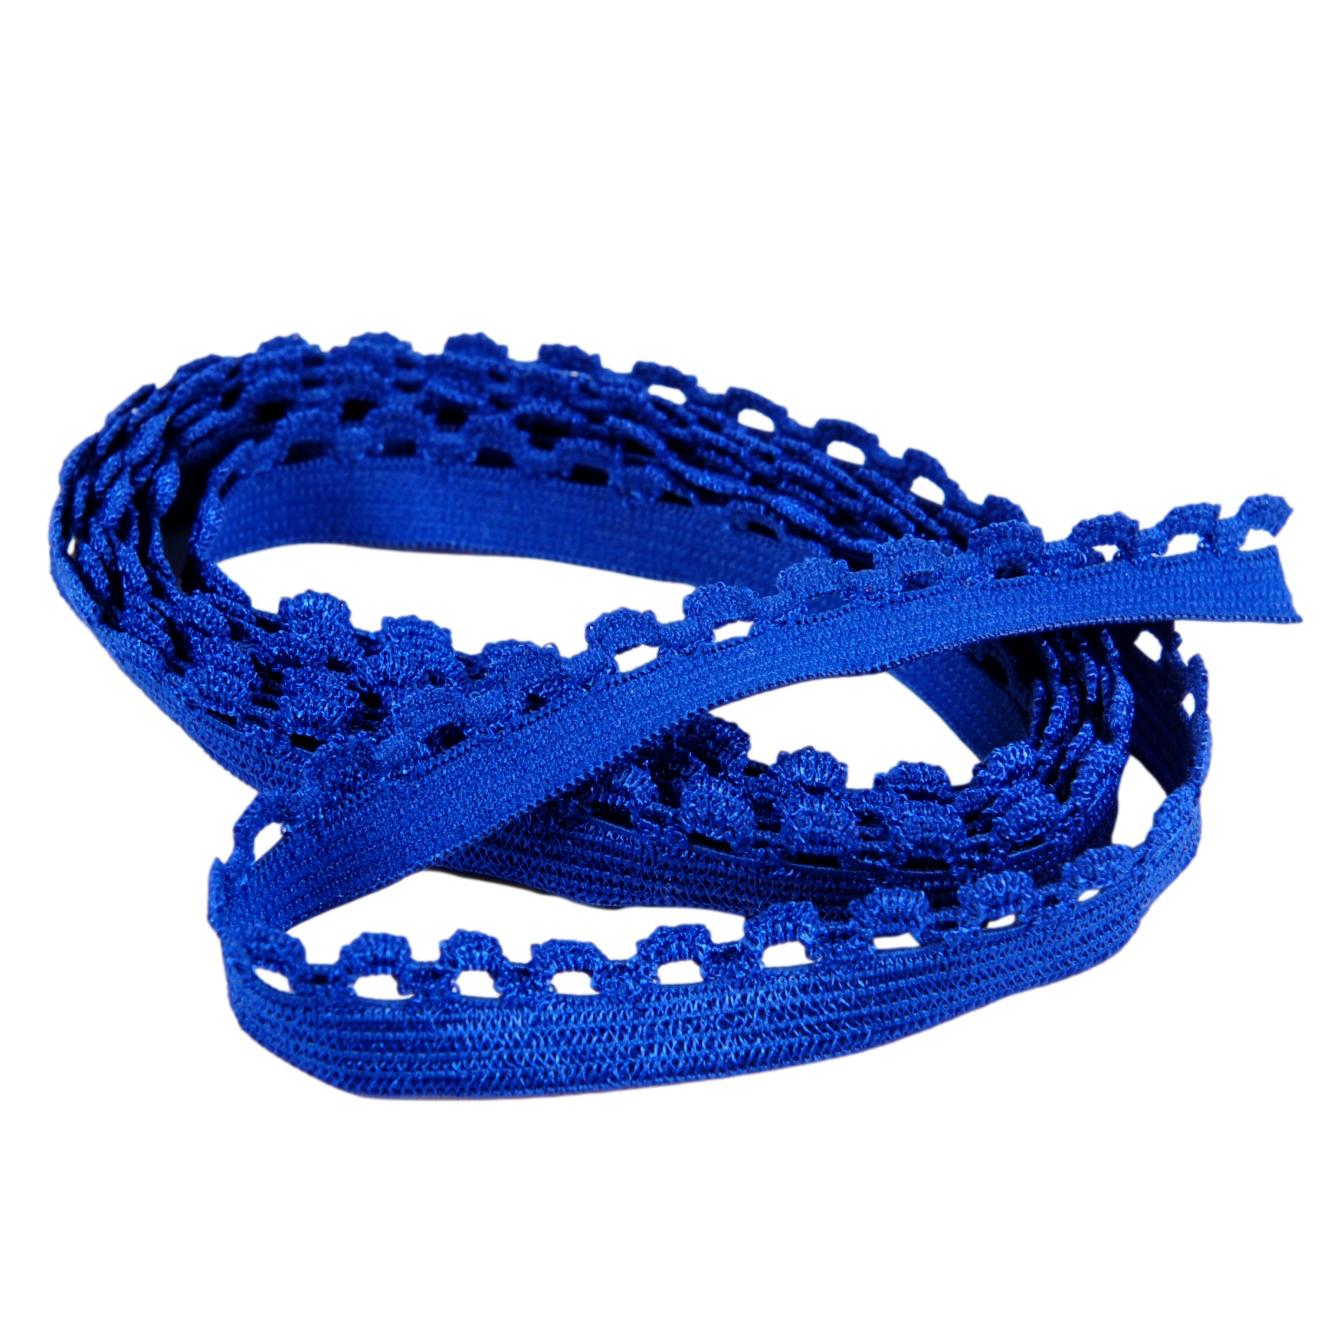 Royal Blue Picot Edge Elastic - 1/2 inch or 12mm